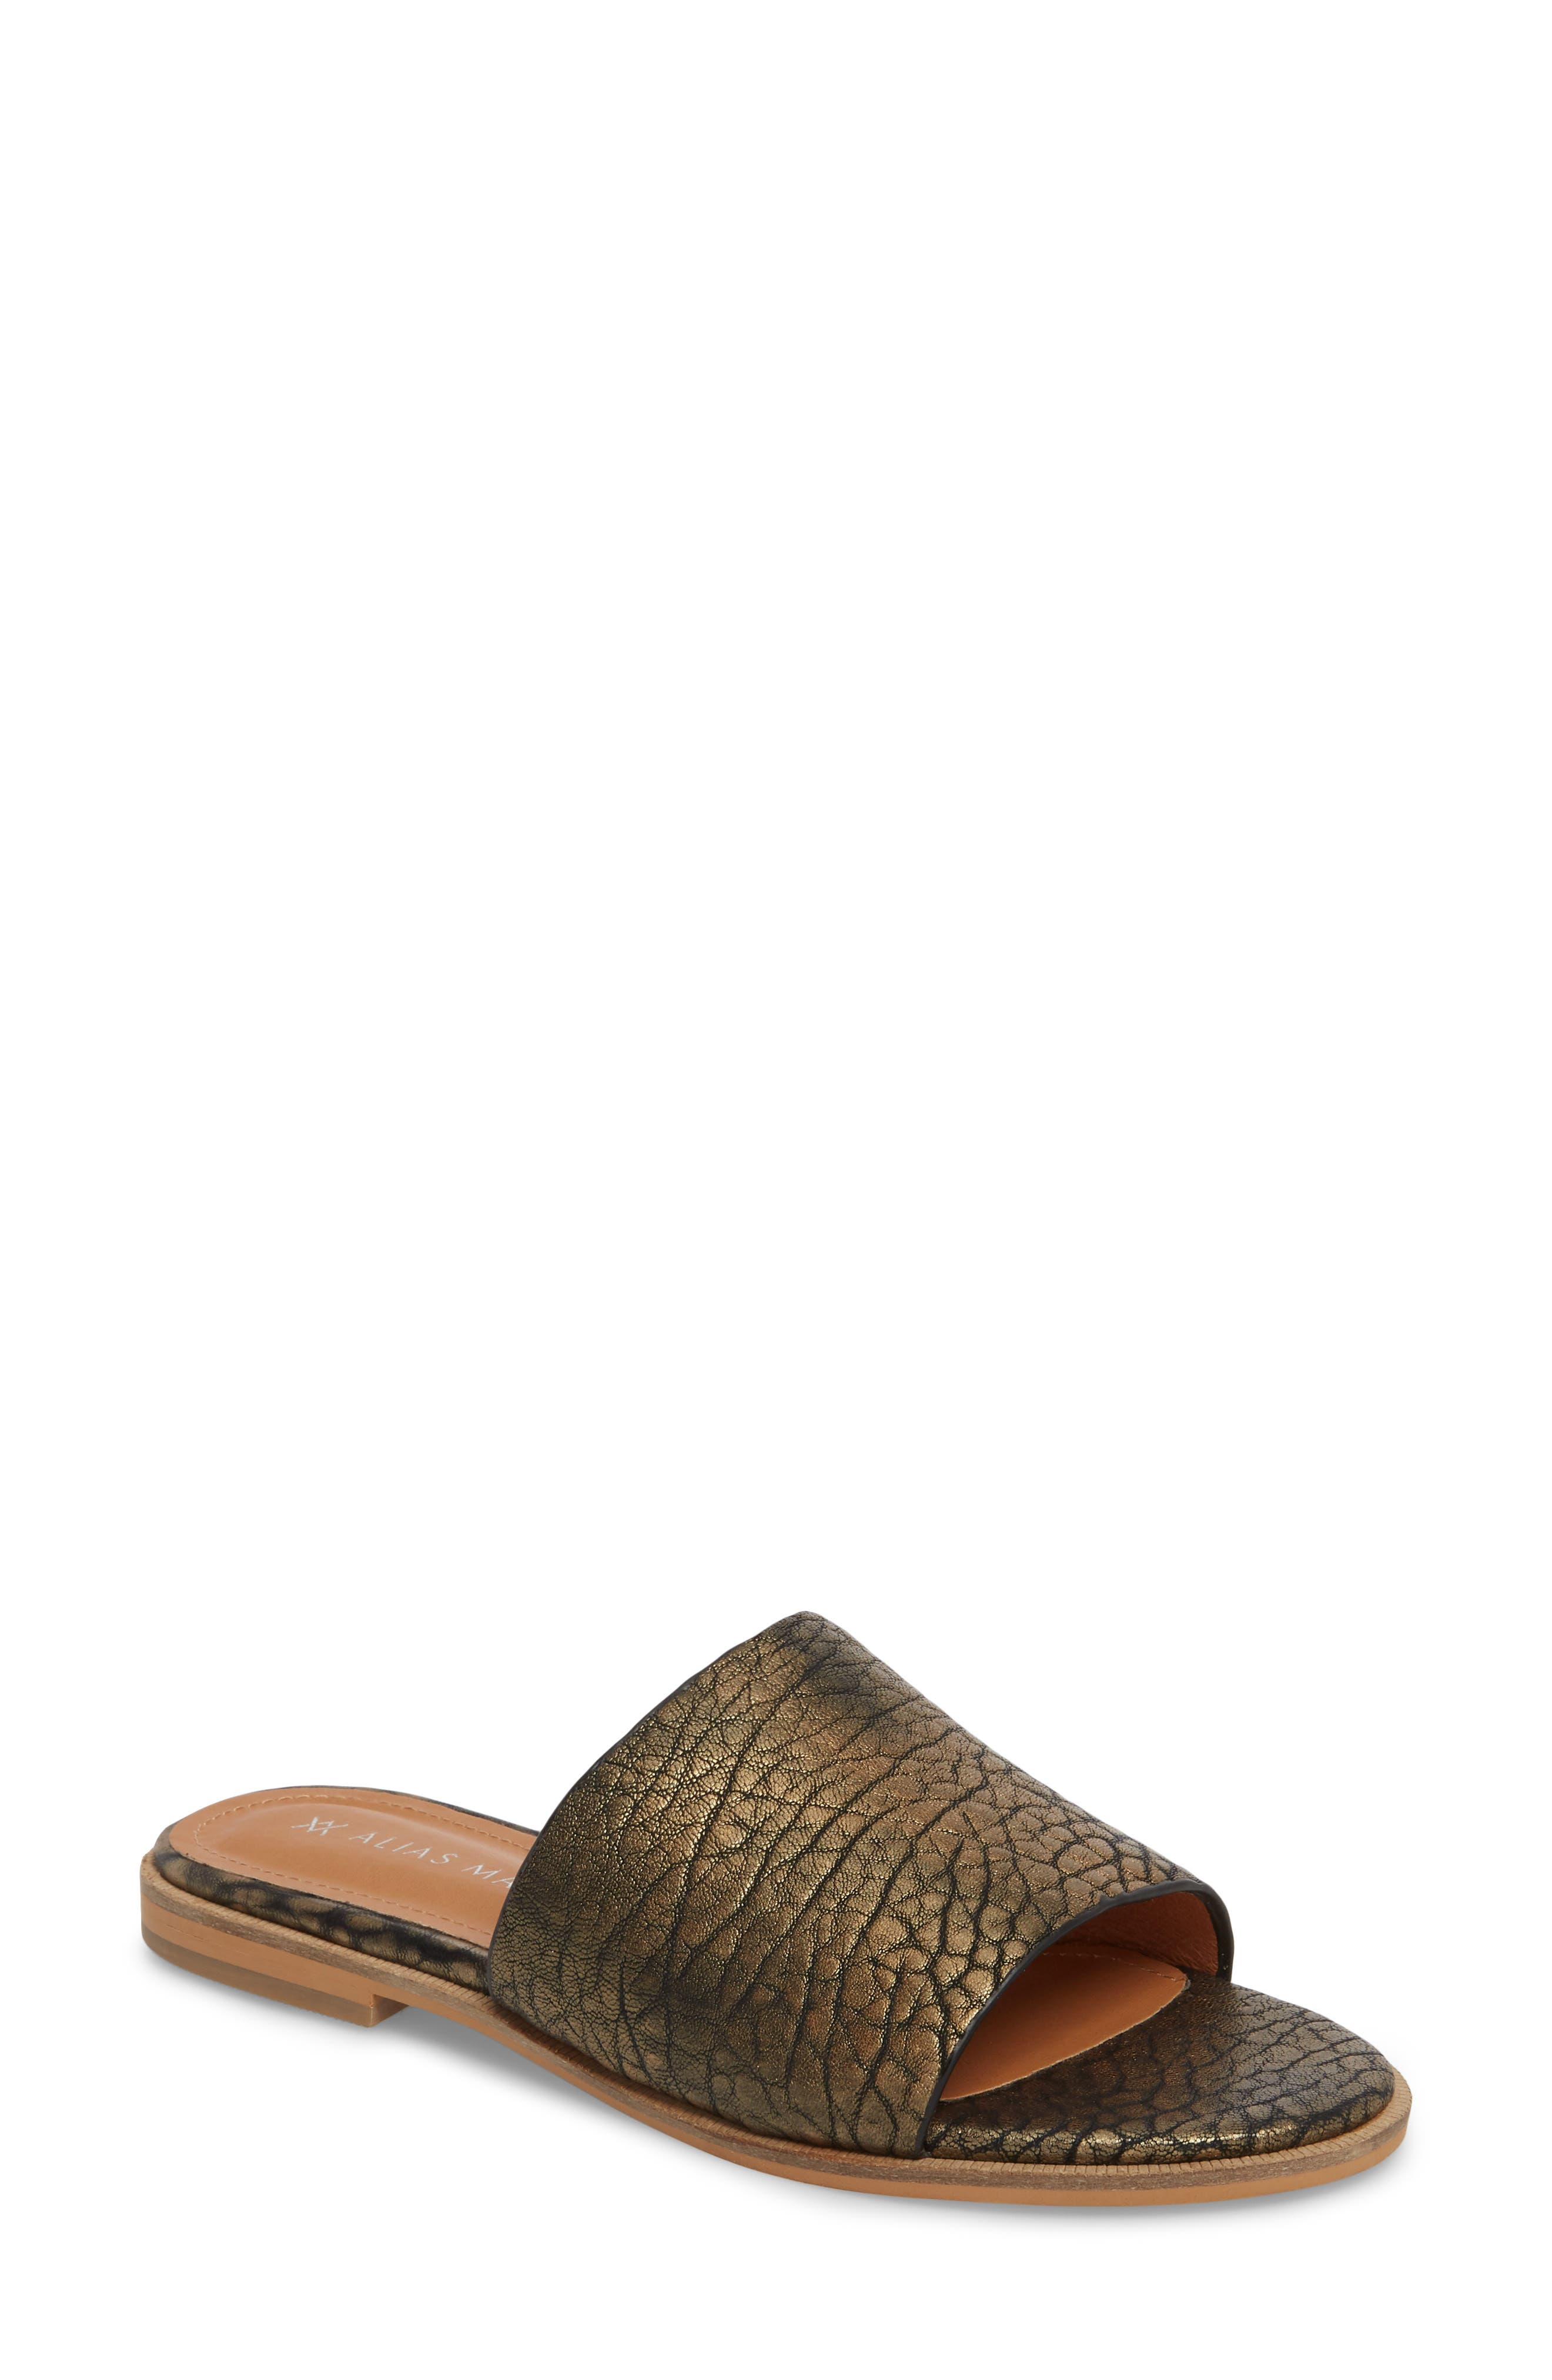 Therapy Slide Sandal,                         Main,                         color, Gold Leather